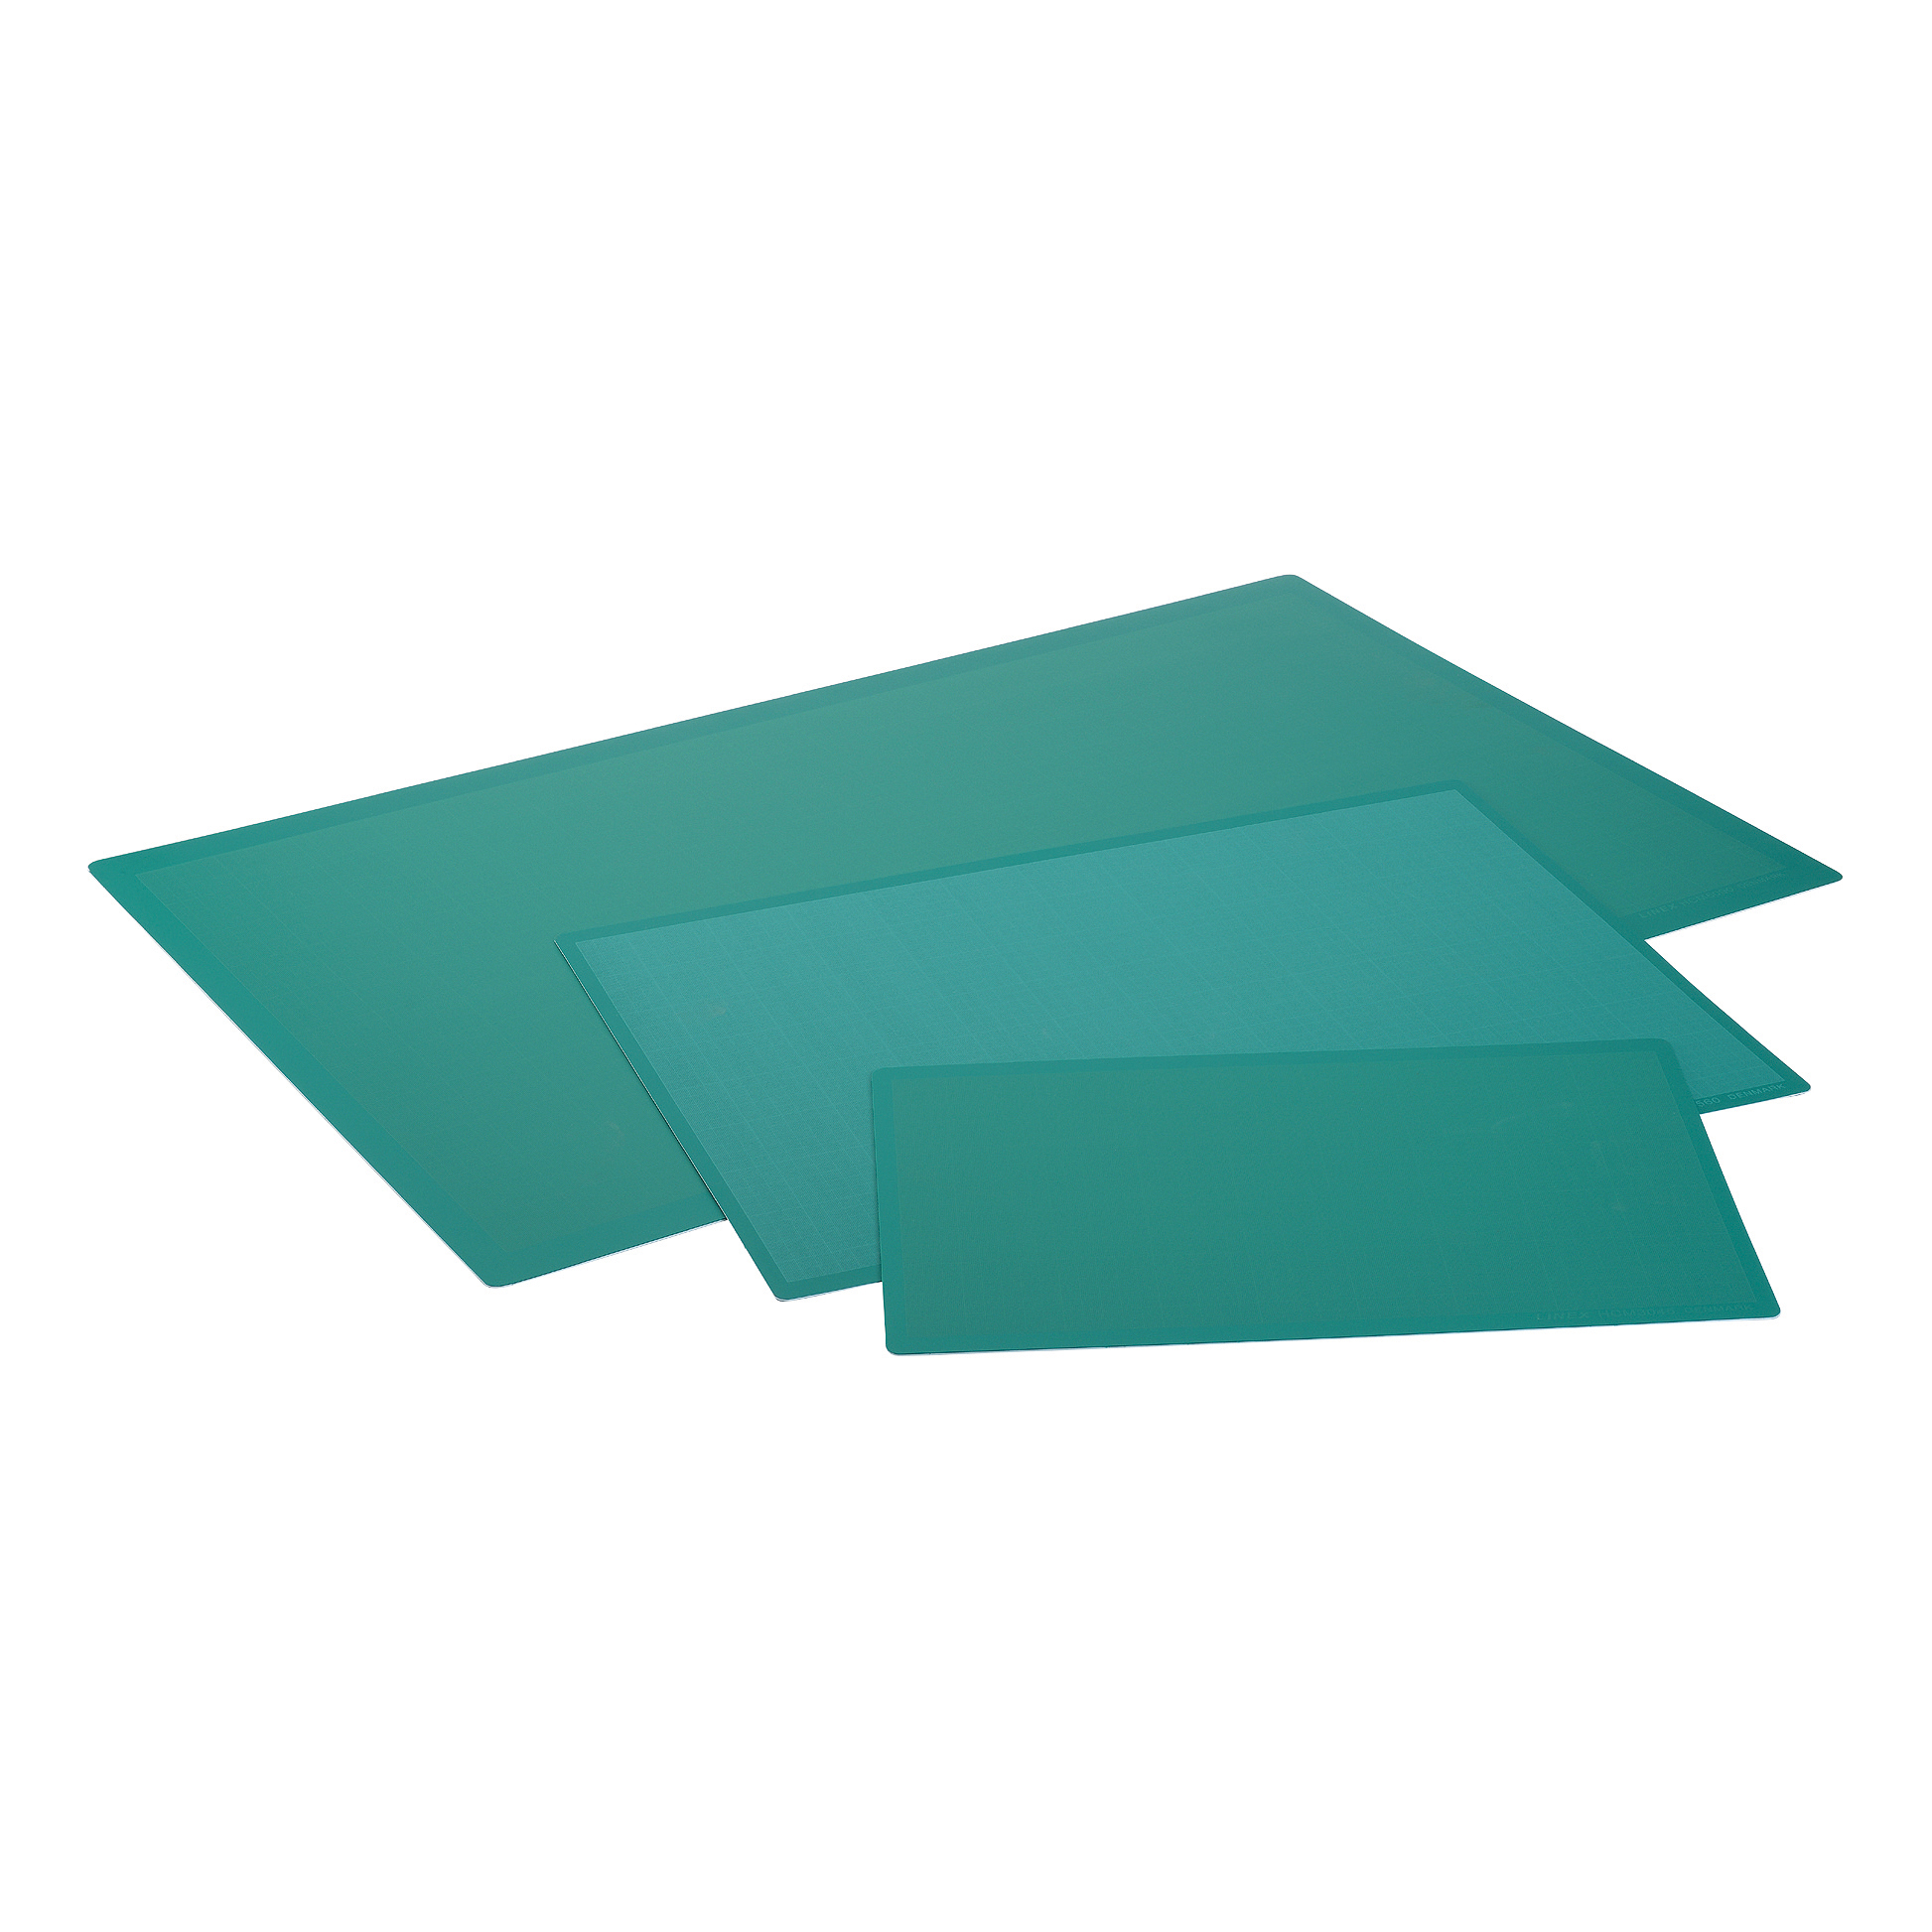 Pattern cutting mats or boards Cutting Mat Anti Slip Self Healing 3 Layers 1mm Grid on Front A1 Green Ref LXKHCM6090